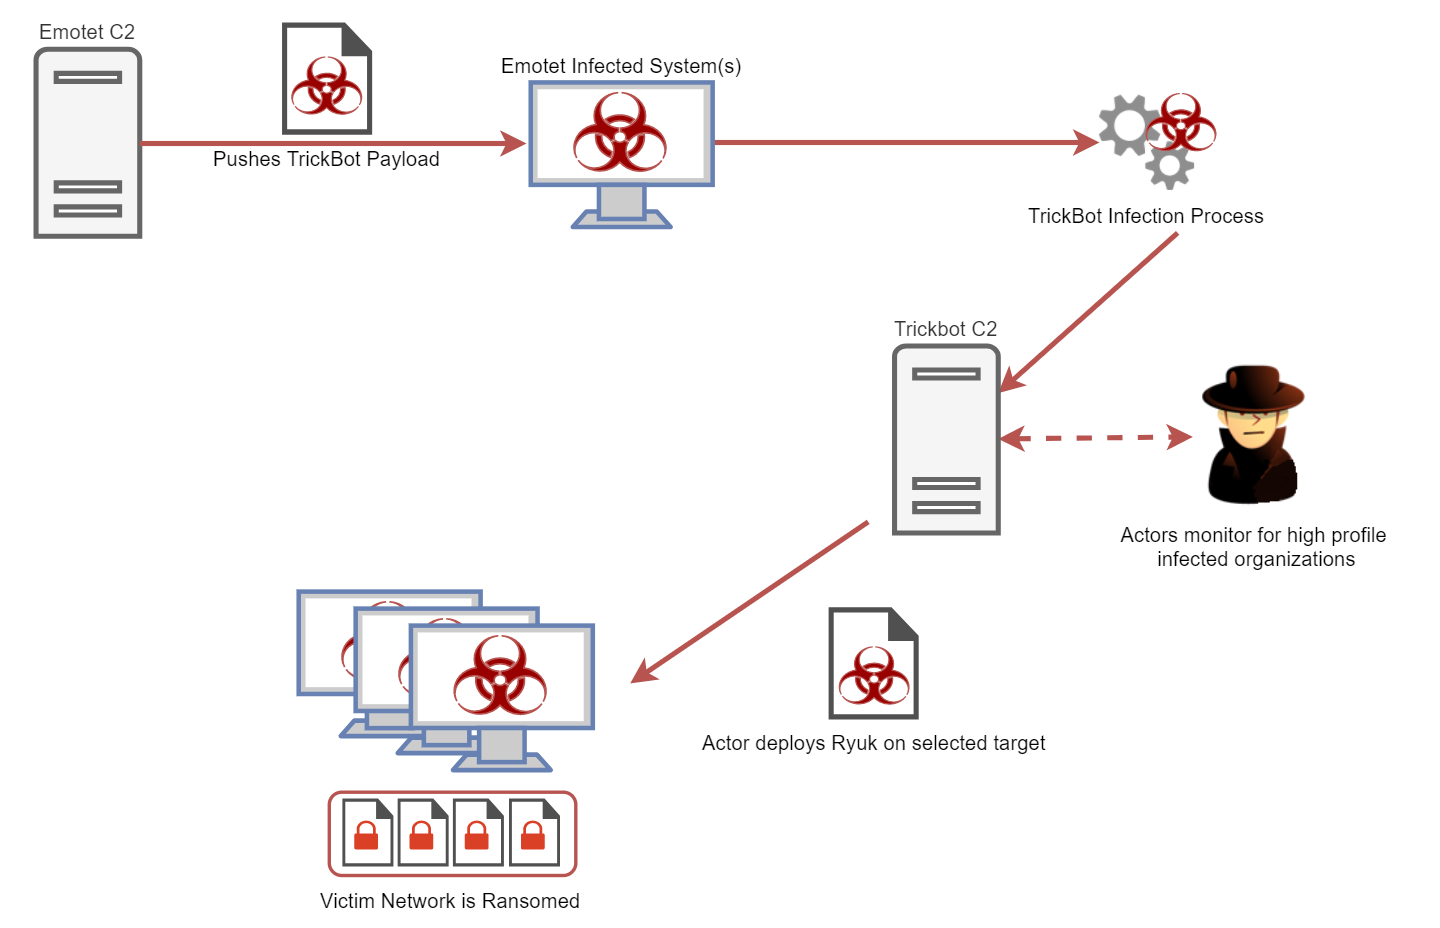 https://www.kryptoslogic.com/blog/2019/01/north-korean-apt-and-recent-ryuk-ransomware-attacks/images/workflow.png